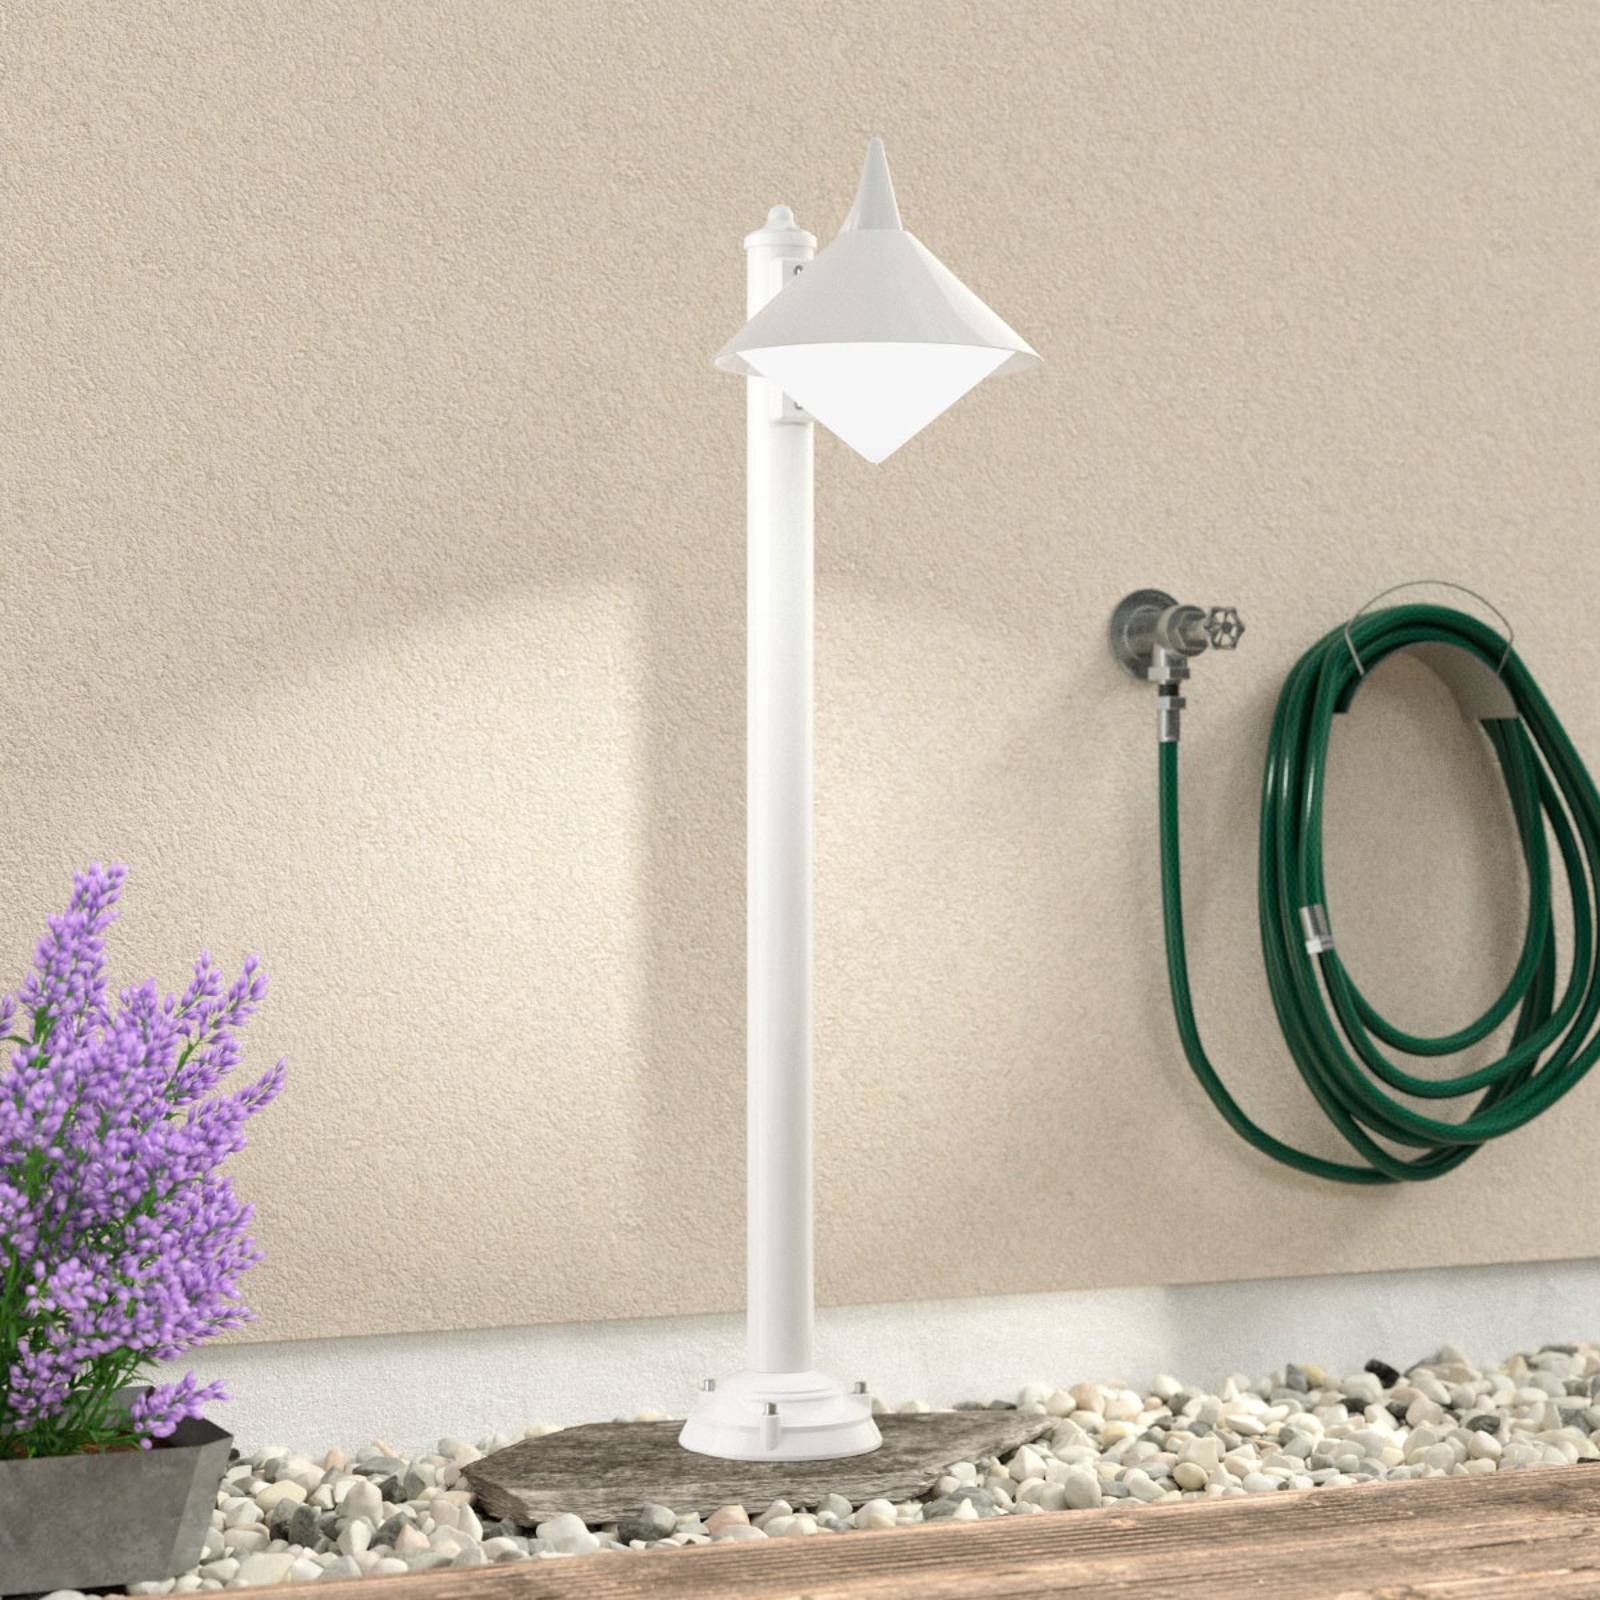 Seawater resistant path lamp Liara, white from LCD